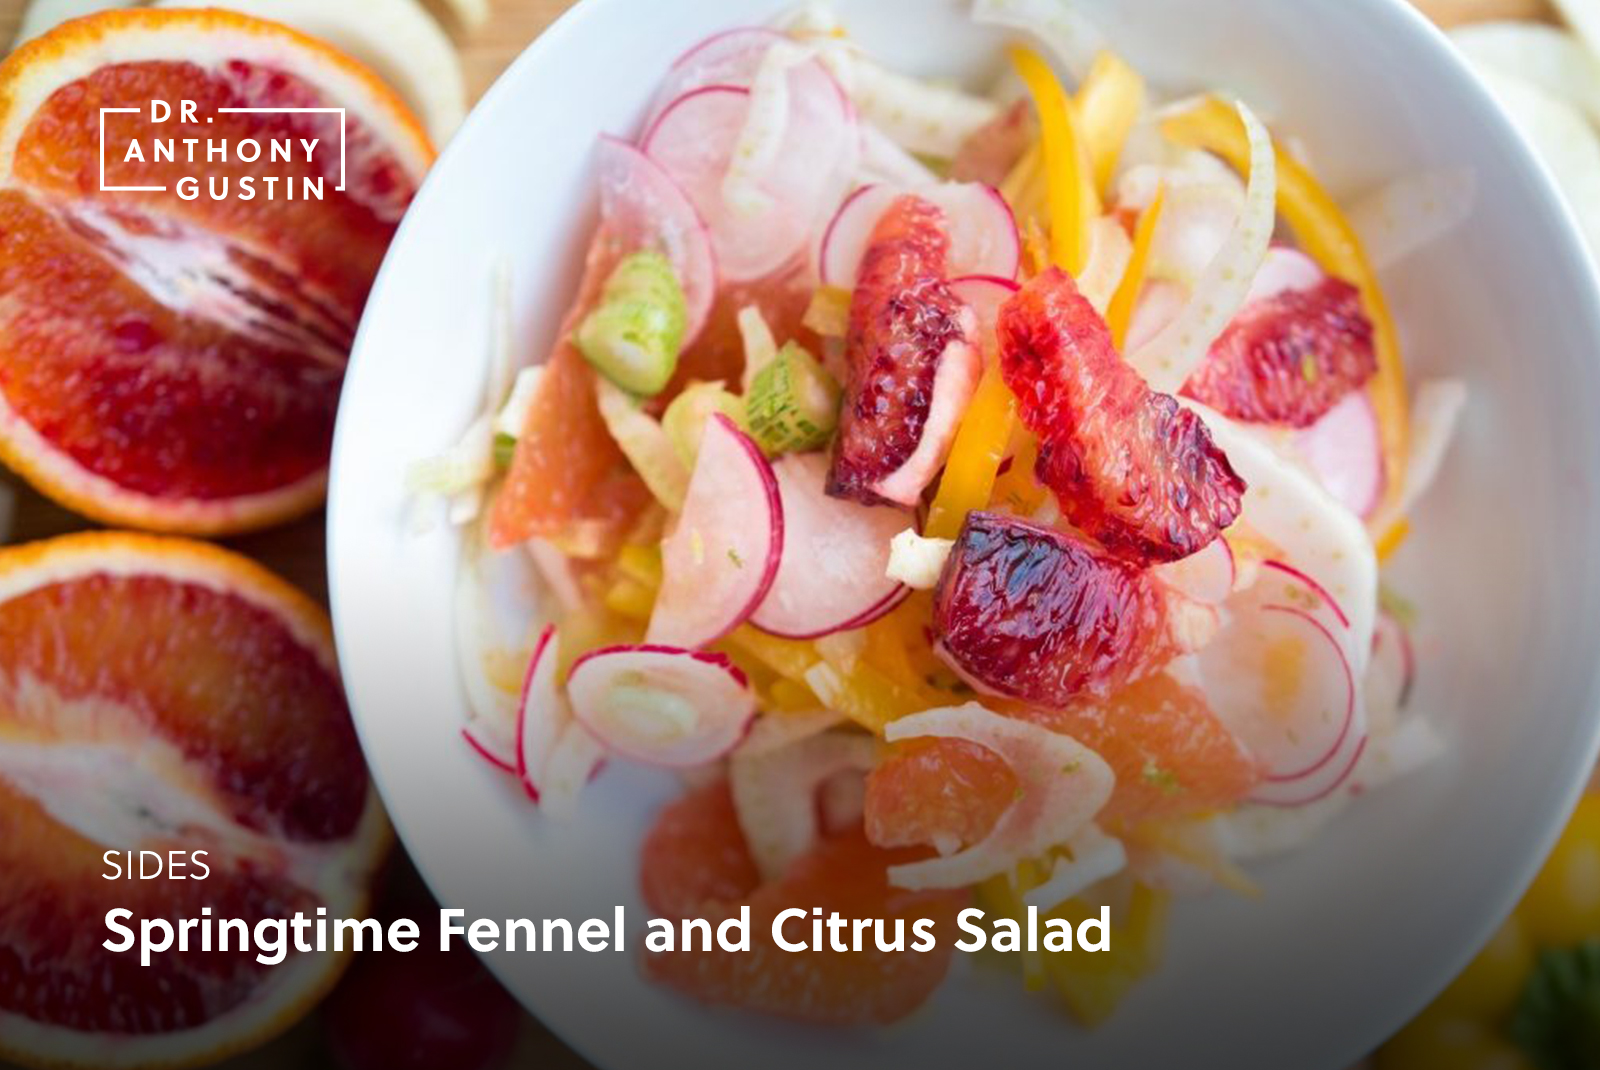 Springtime Fennel and Citrus Salad